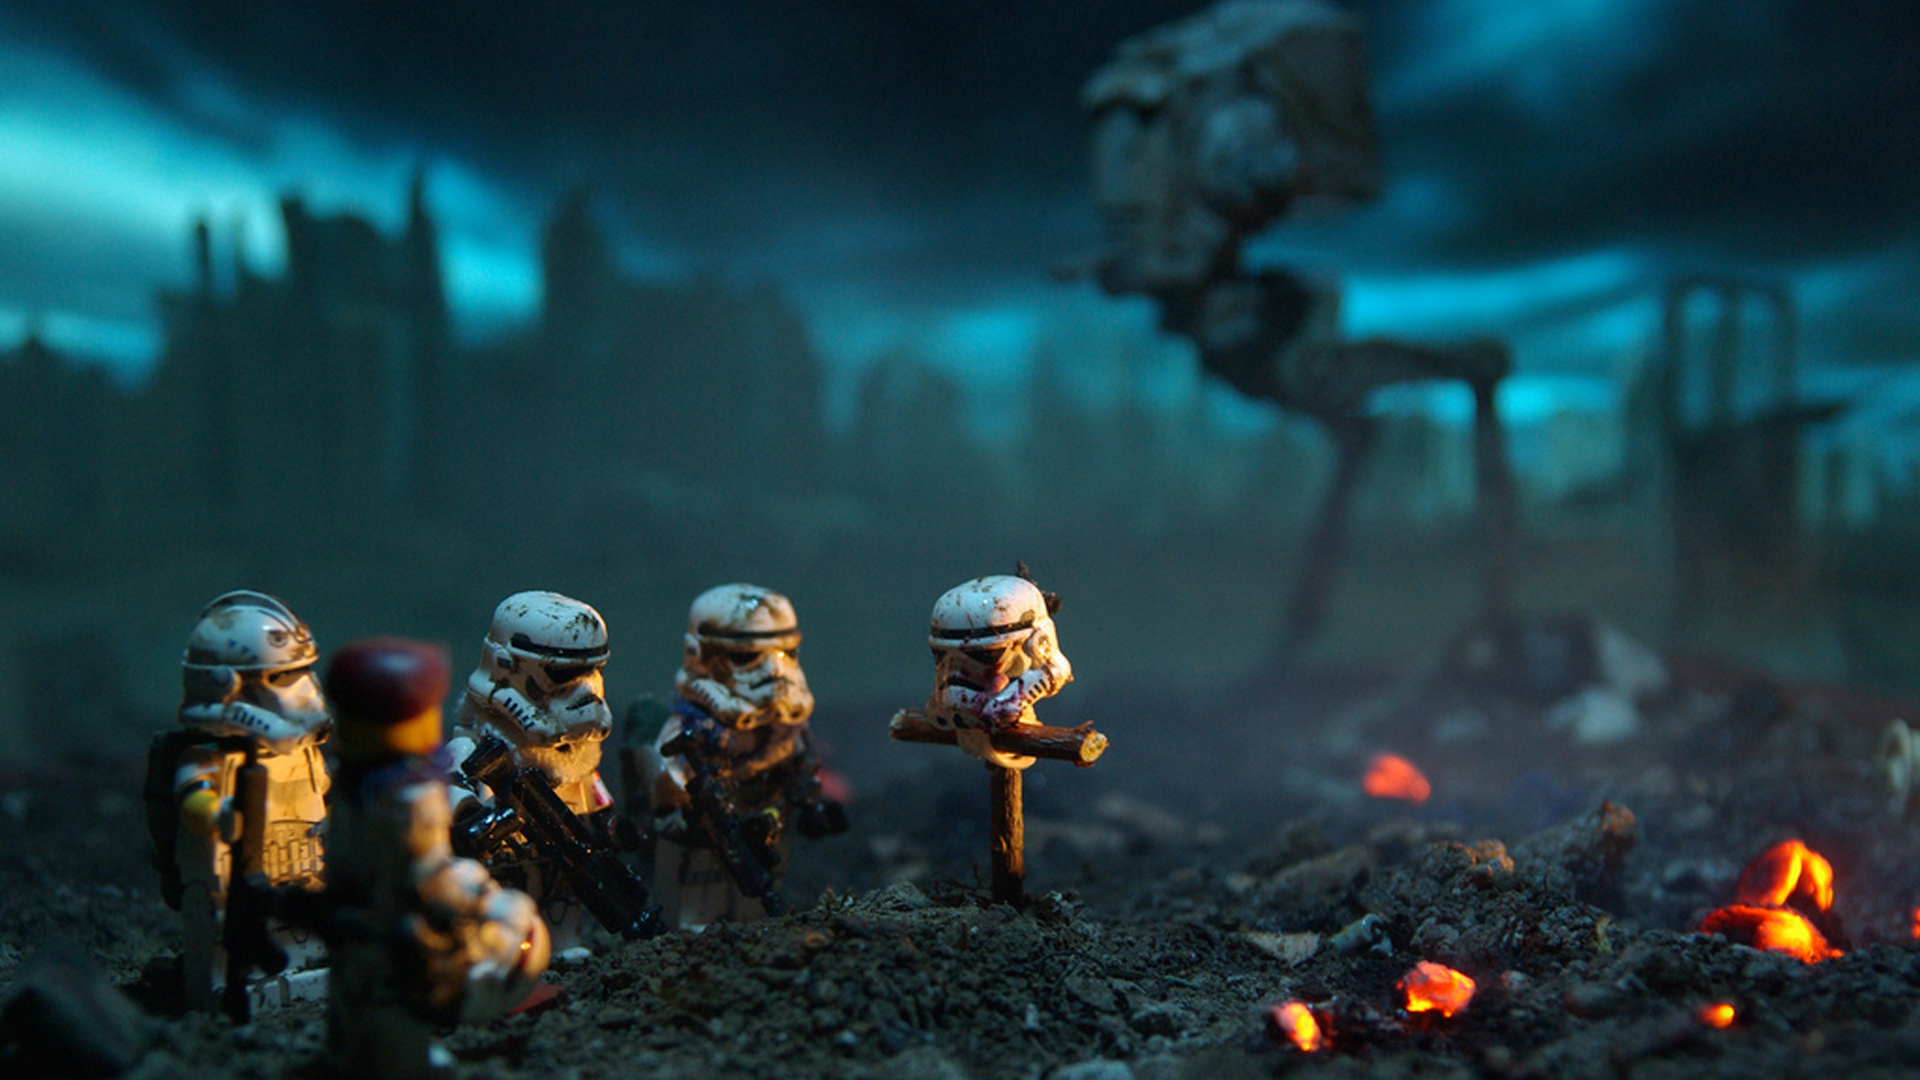 Lego Star Wars Stormtroopers Wallpapers | HD Wallpapers